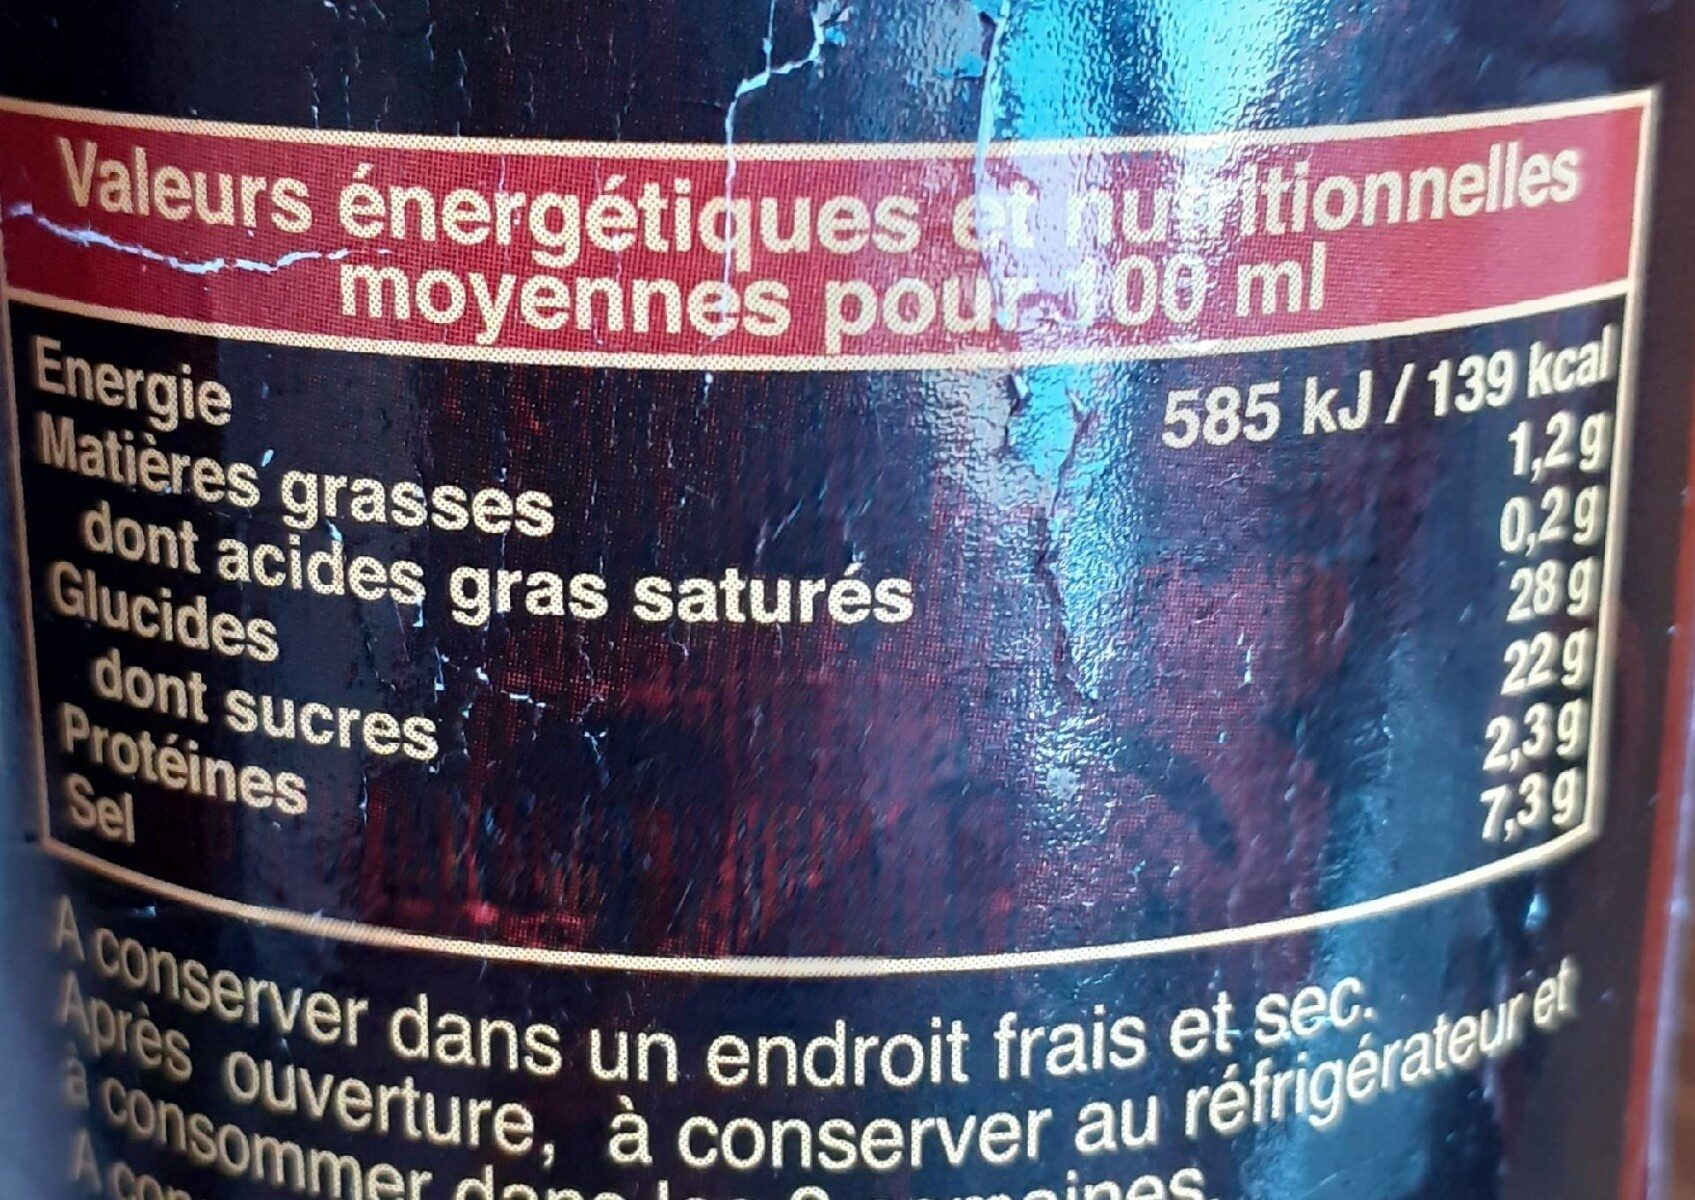 Exotic Food Scharfe Chili-sauce Spiracha - Nutrition facts - fr